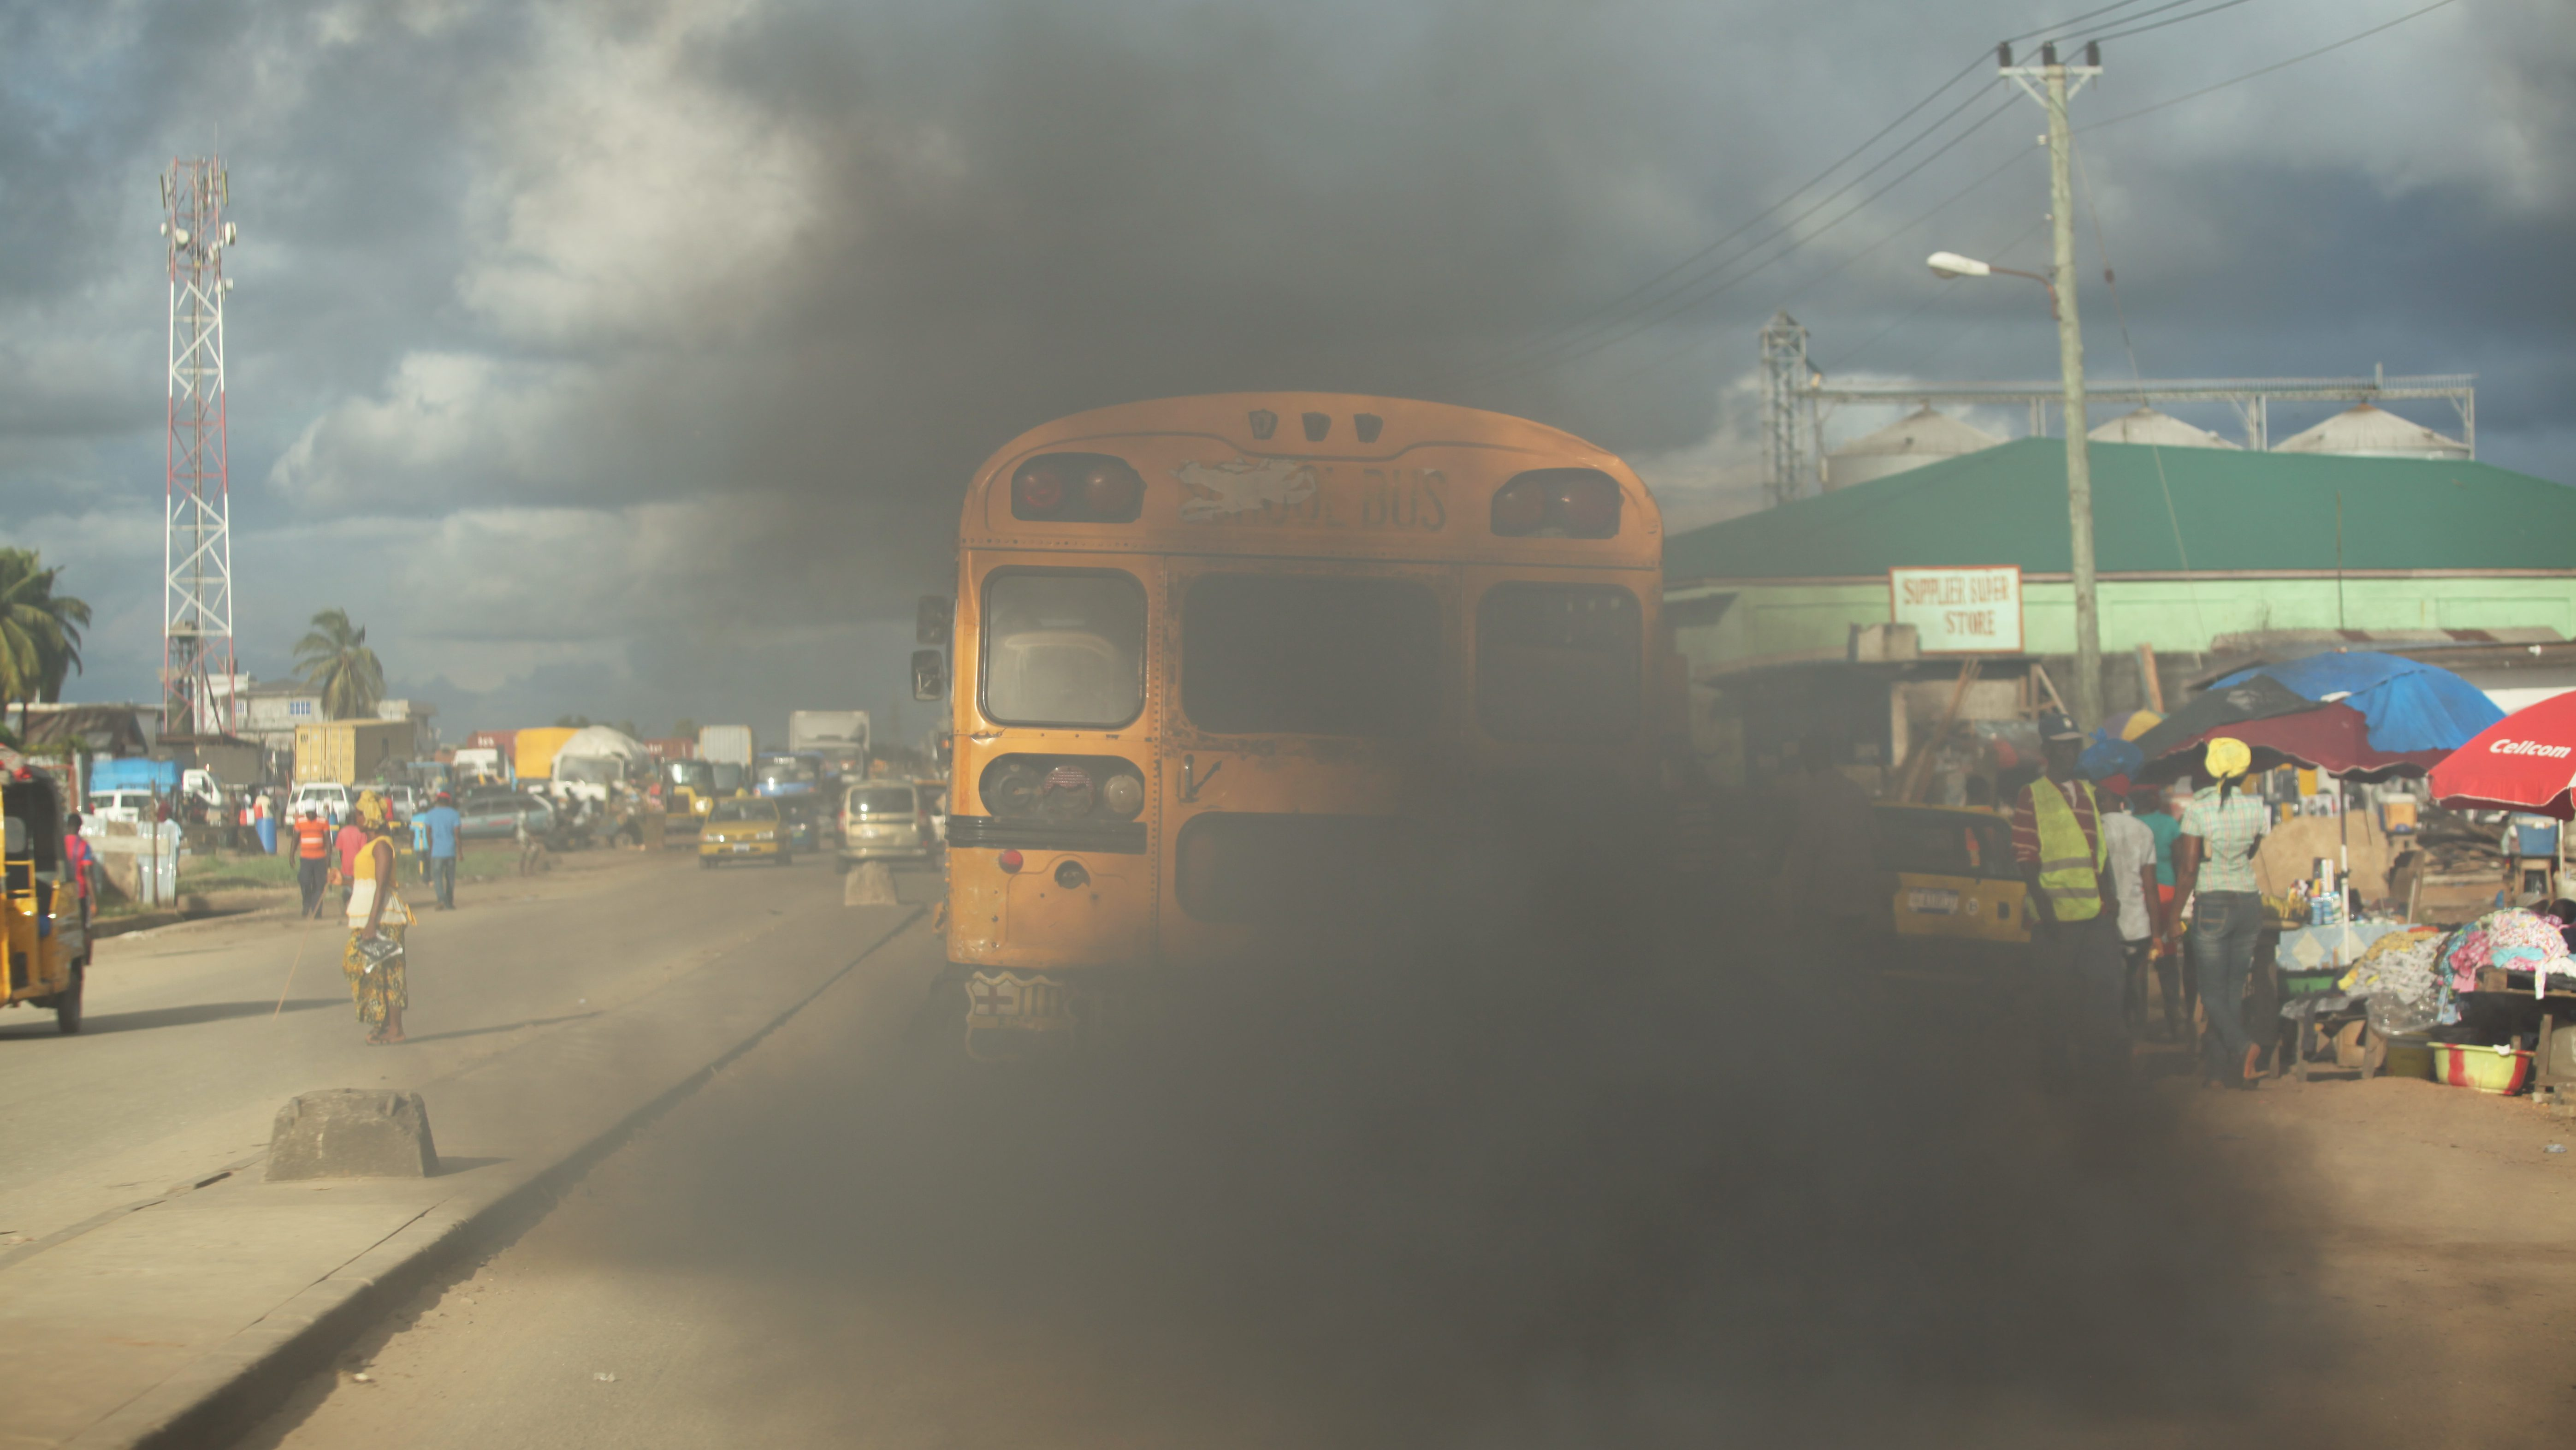 Smoke from Diesel Emssions in Monrovia